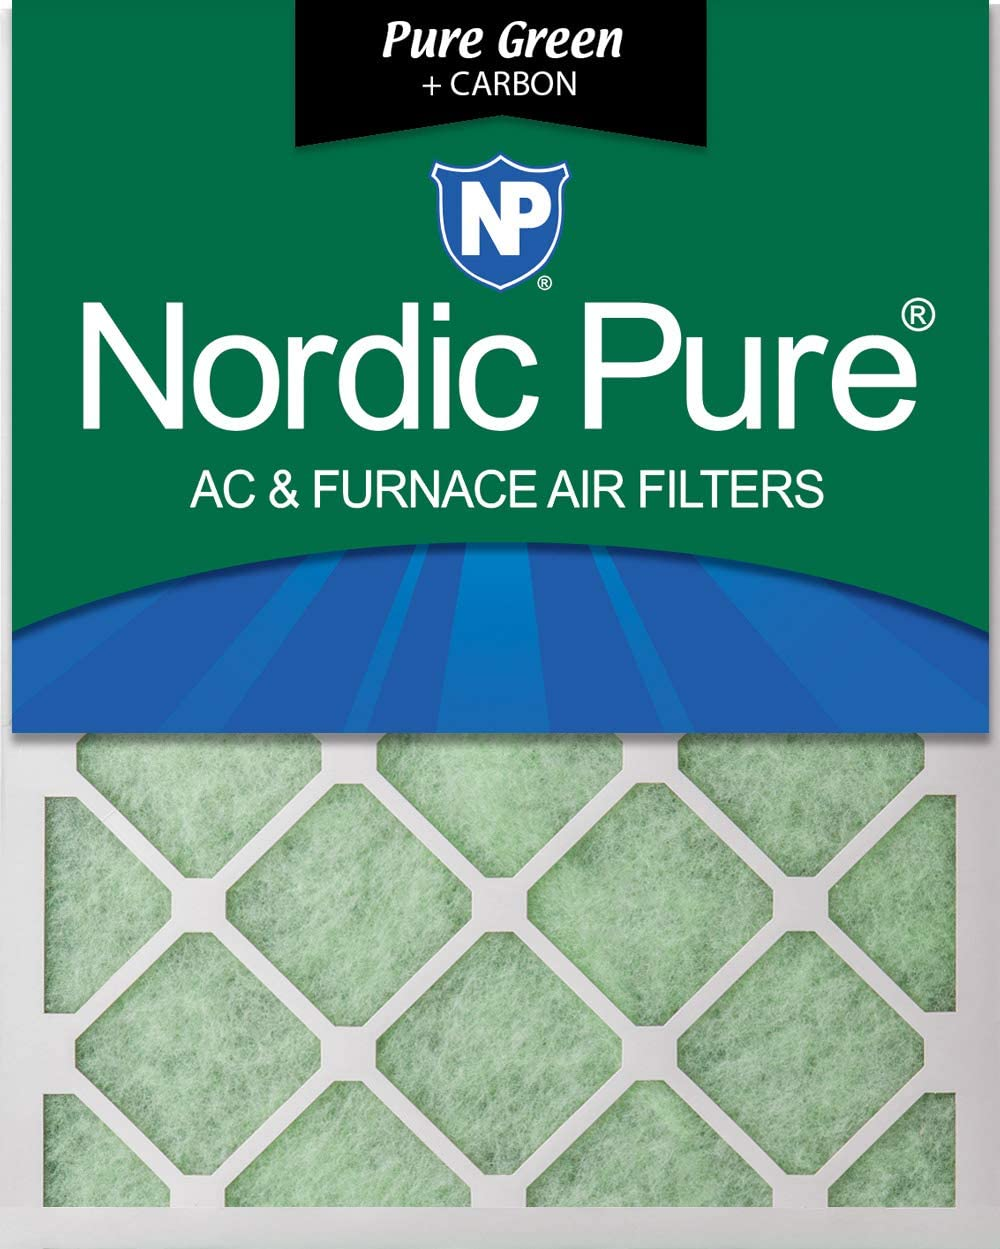 Nordic Pure 12x24x1 MERV 12 Pleated AC Furnace Air Filters 6 PACK 6 Pack 6 PACK